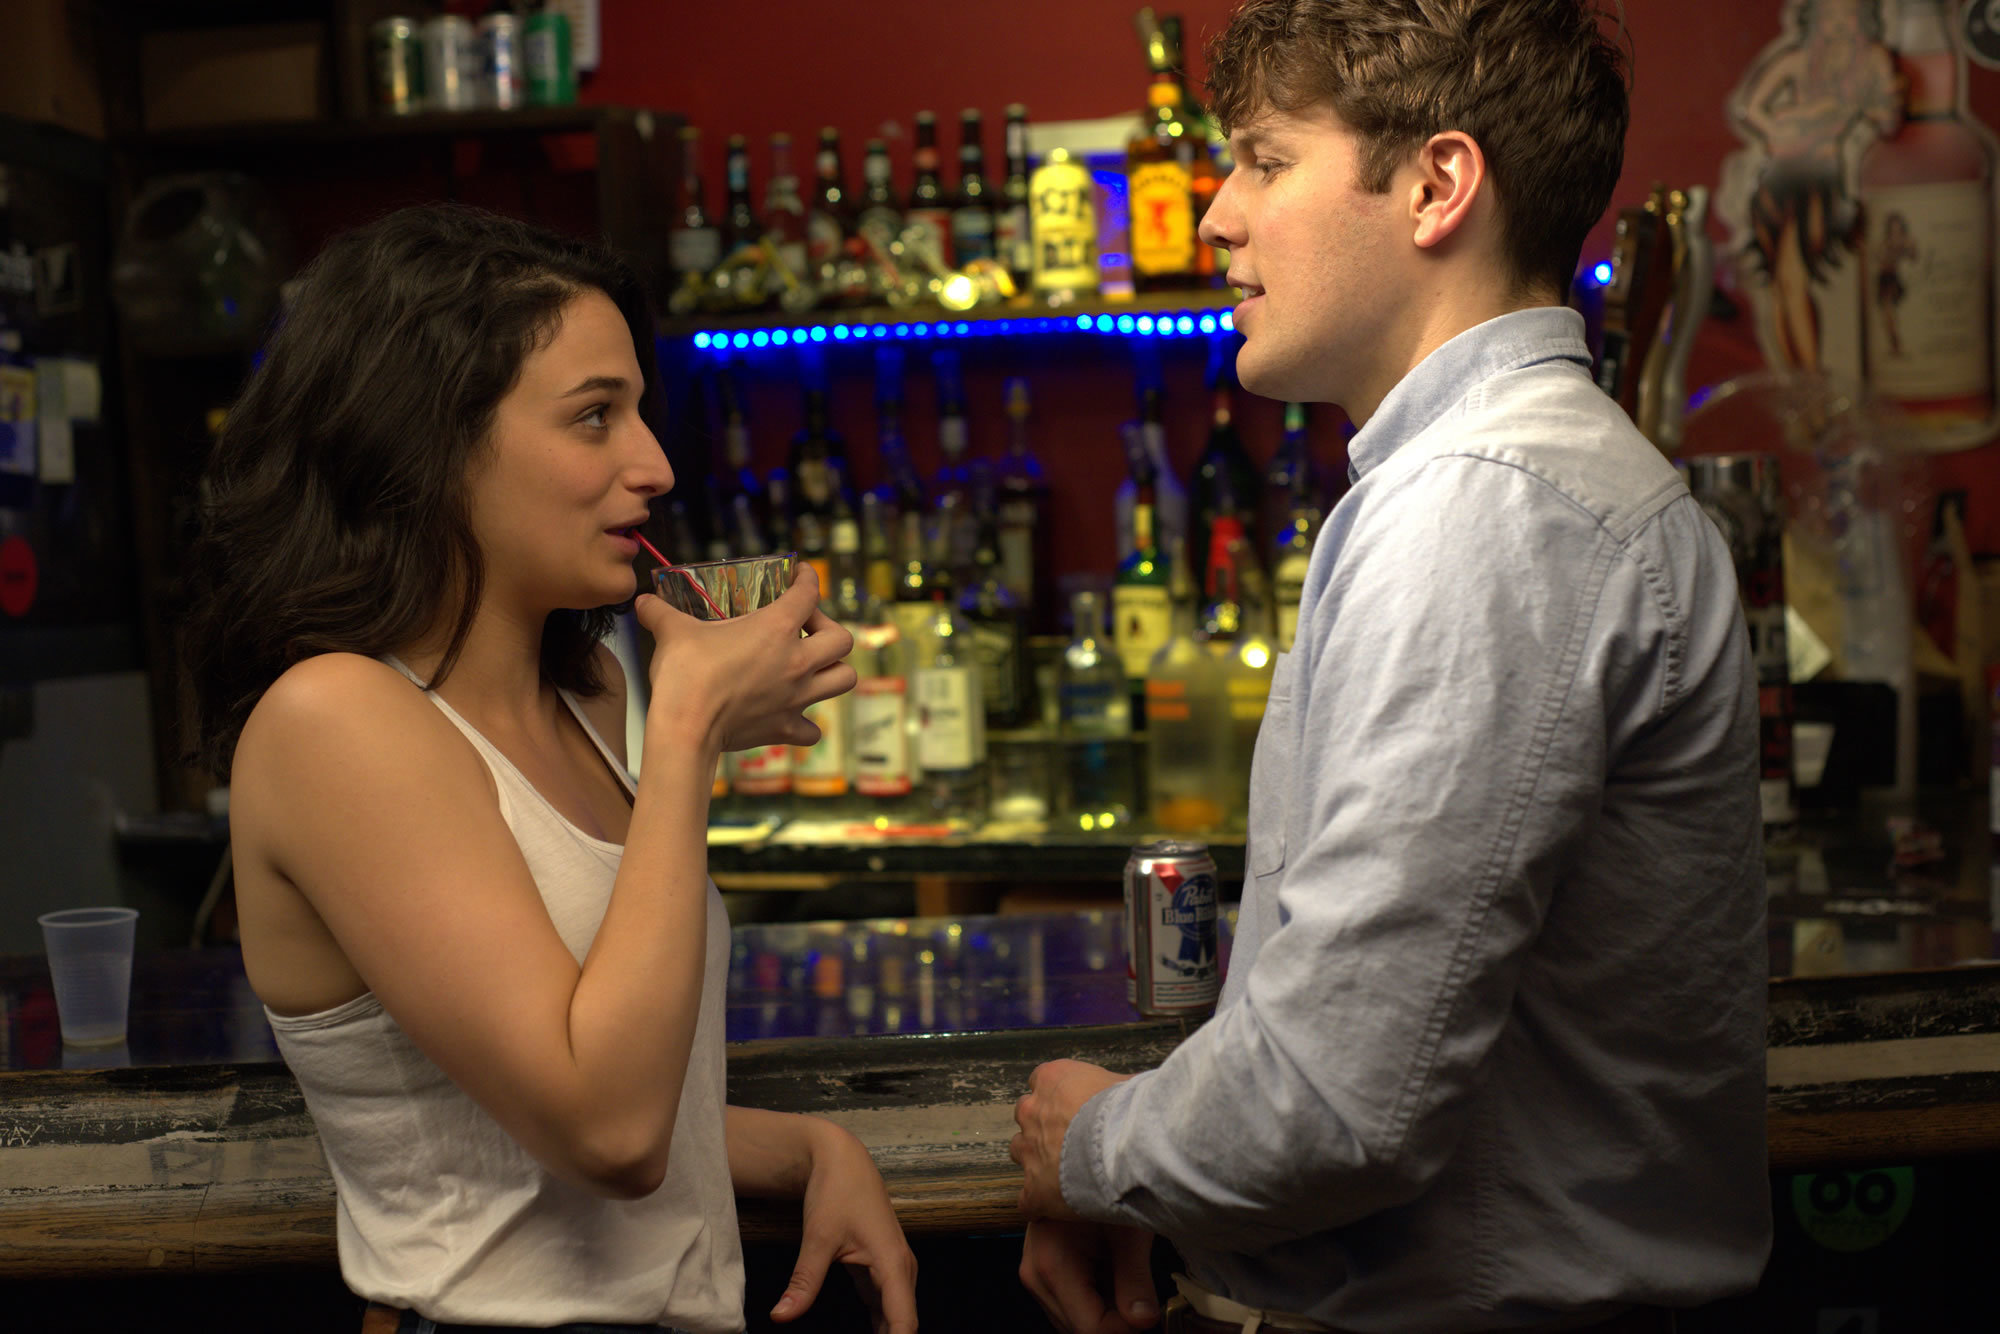 the 25 best feelgood movies on netflix: Obvious Child